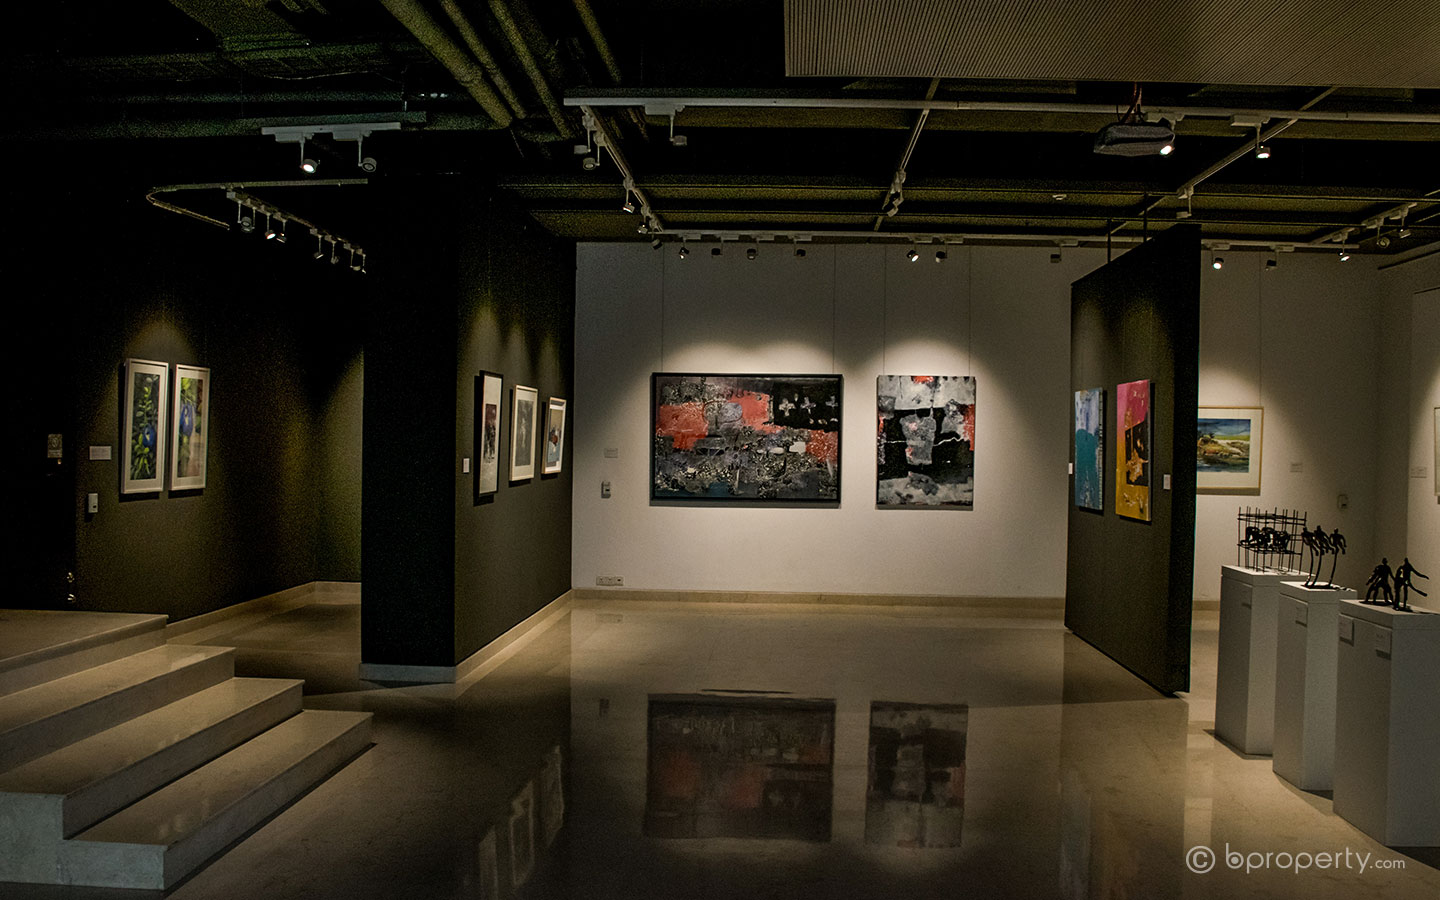 One of the more popular art galleries for foreigners